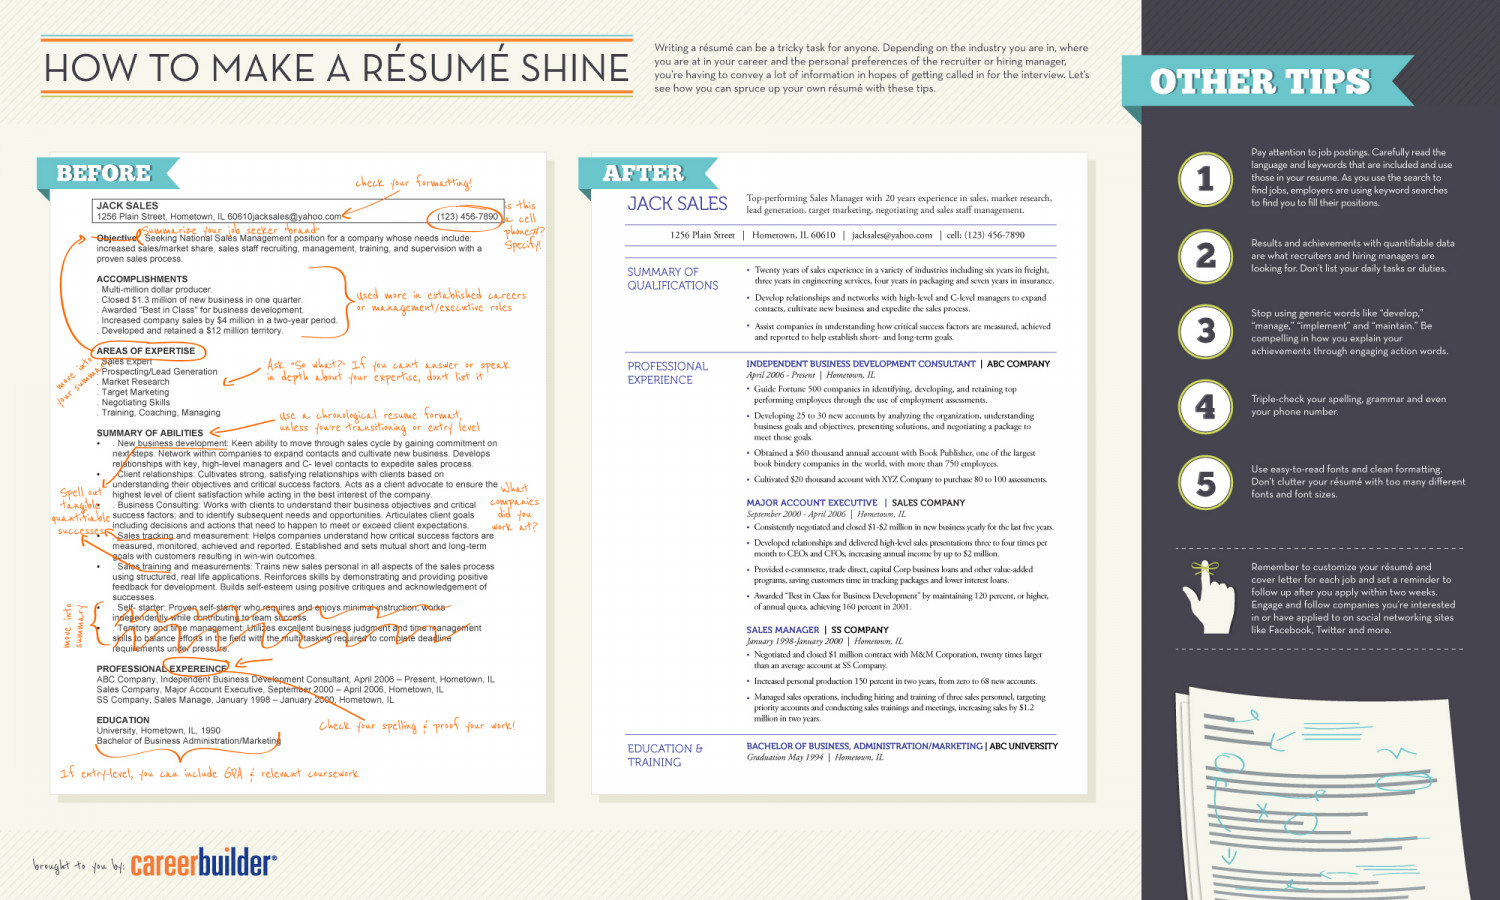 How To Make A Résumé Shine Infographic  Career Builders Resume